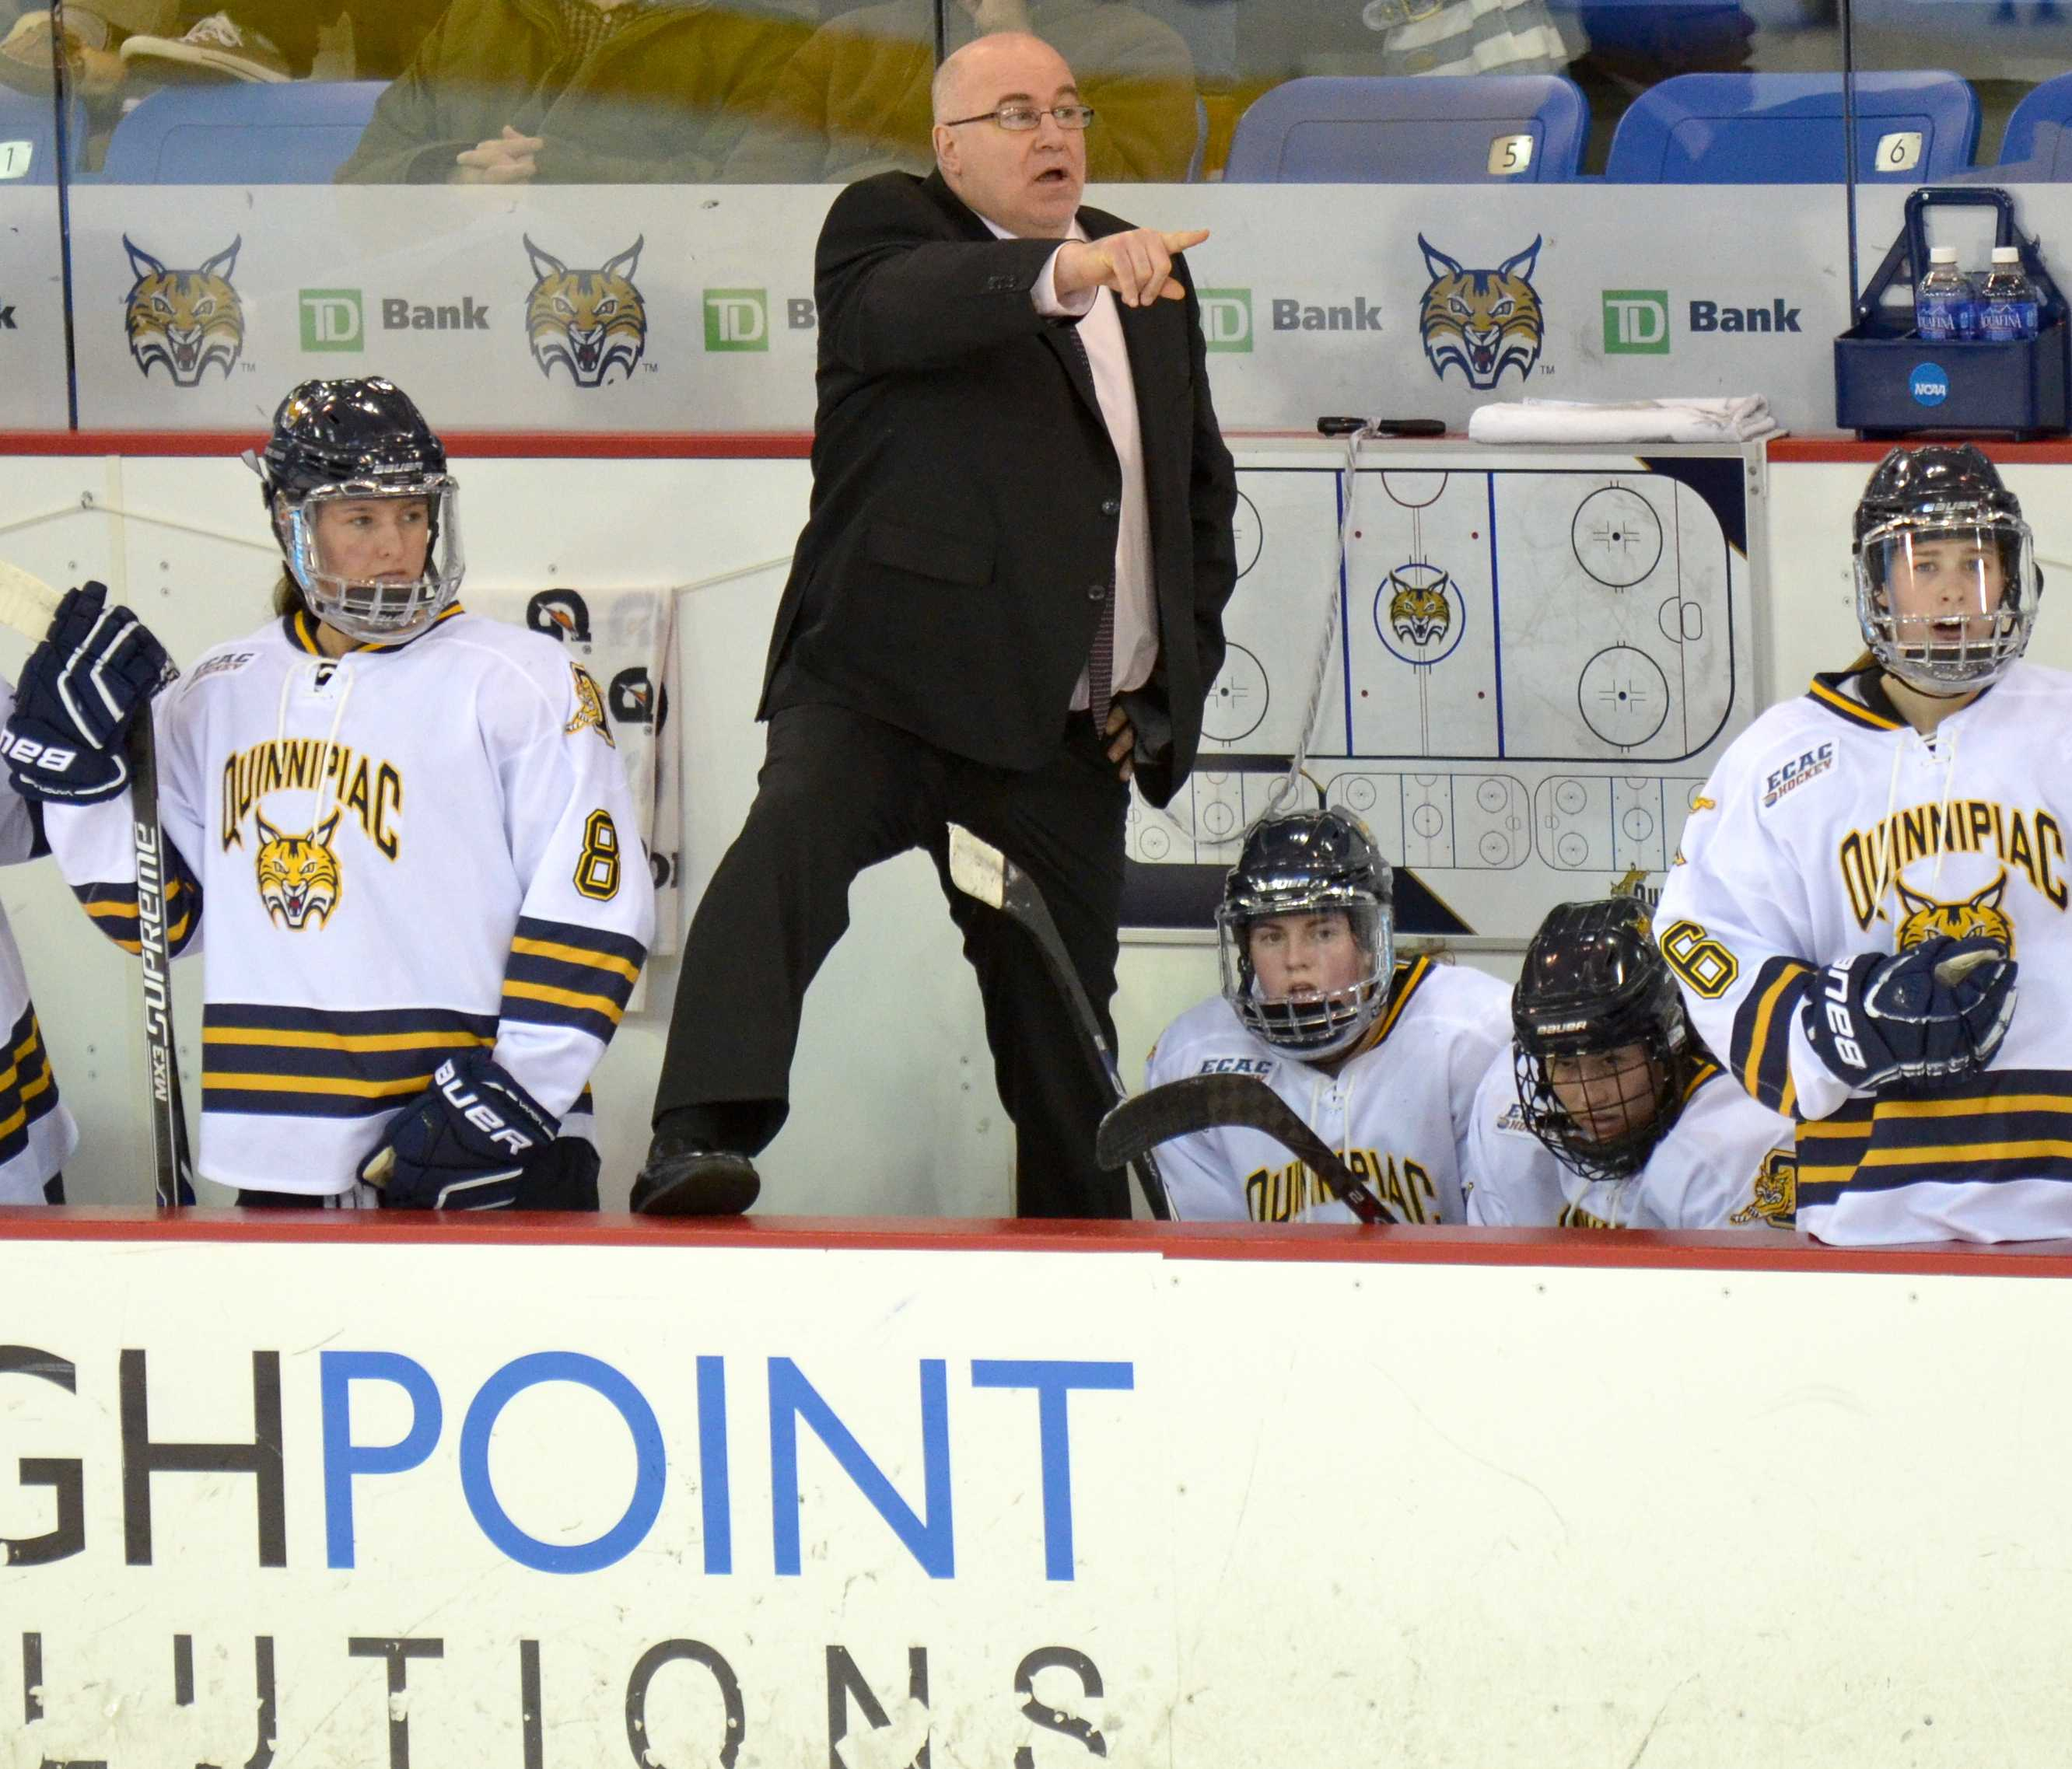 Former QU coach files lawsuit for $15,000